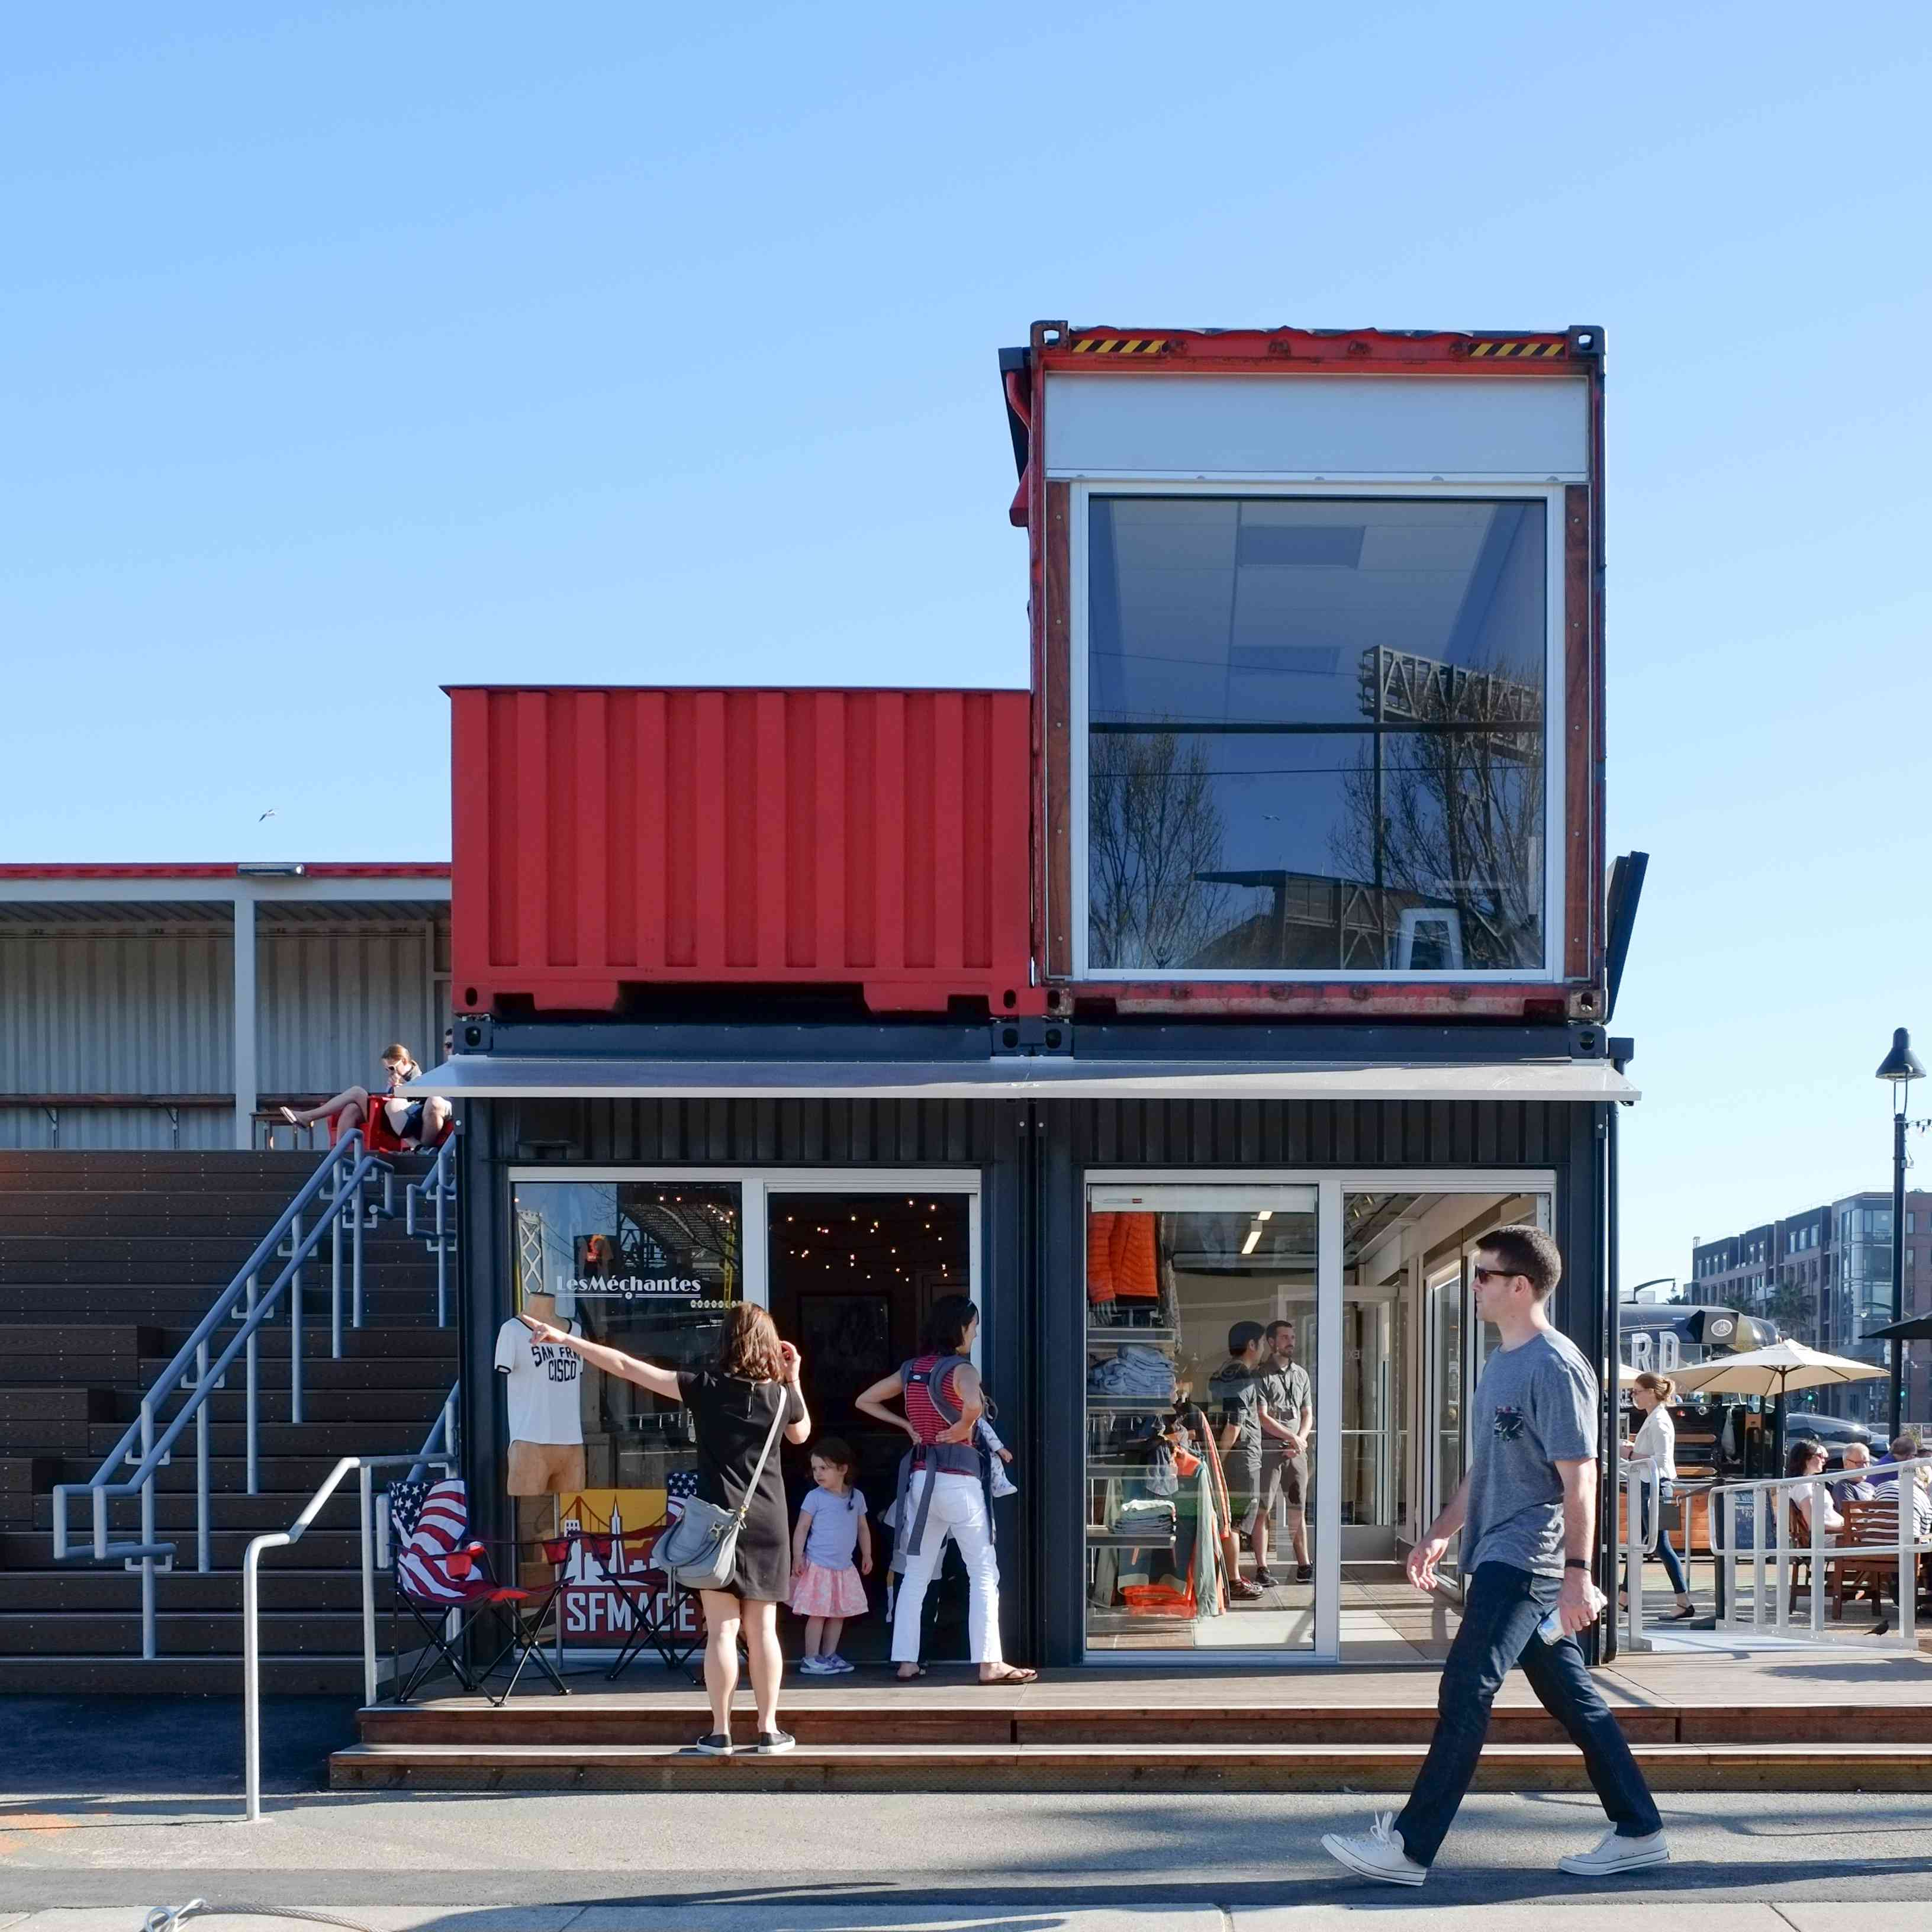 Street view of shipping containers stacked atop a storefront